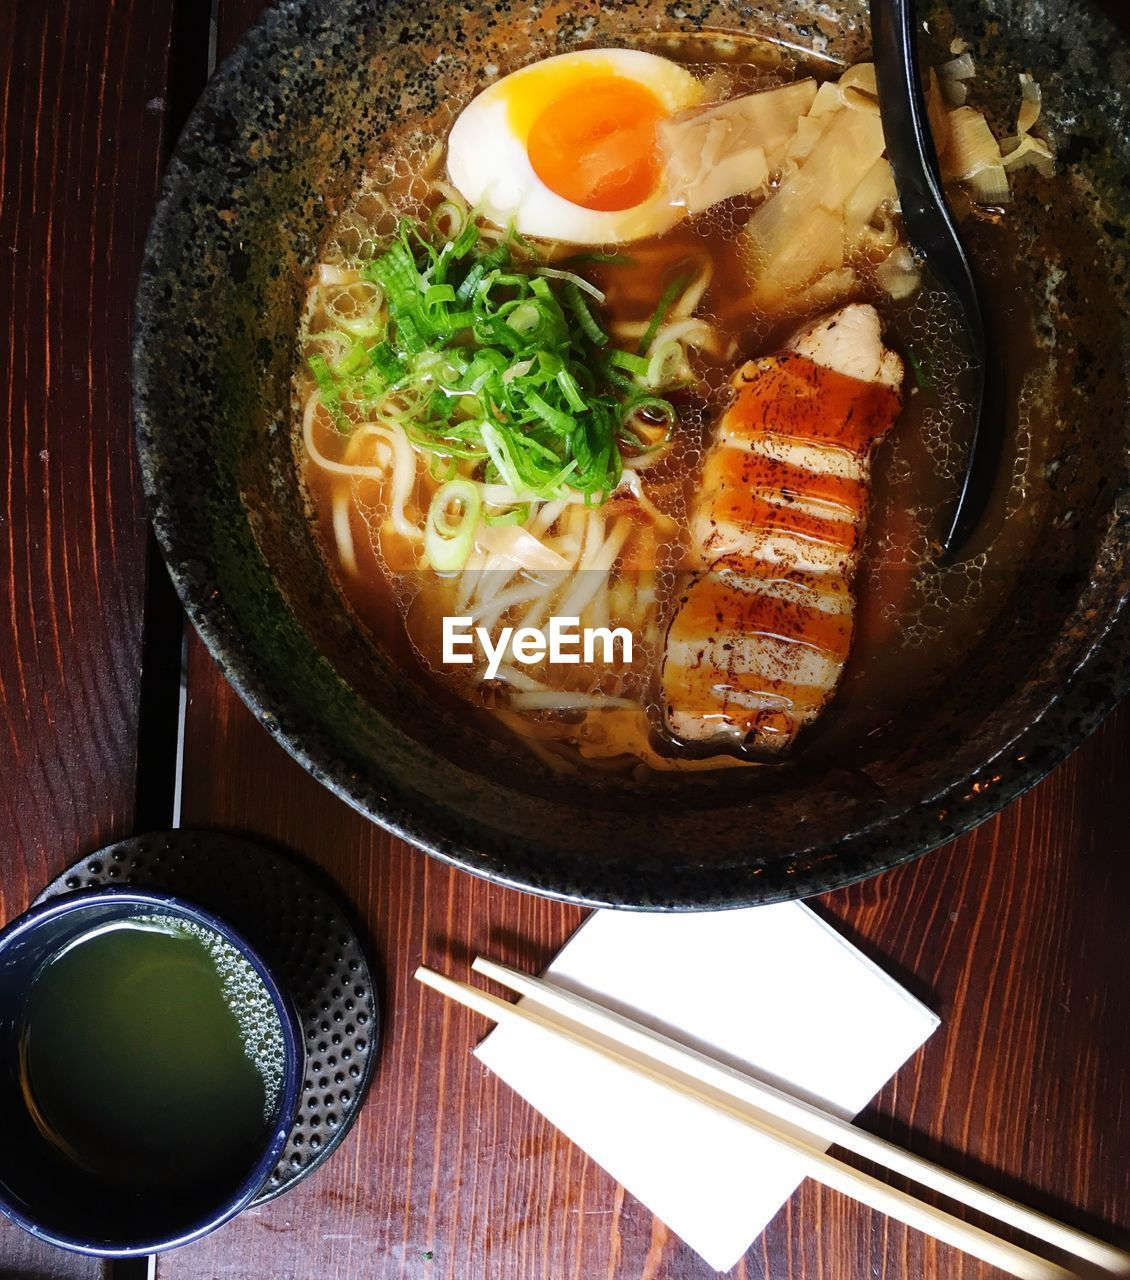 food and drink, food, freshness, ready-to-eat, meat, high angle view, healthy eating, indoors, still life, asian food, no people, close-up, kitchen utensil, table, bowl, japanese food, serving size, vegetable, wellbeing, directly above, meal, crockery, korean food, garnish